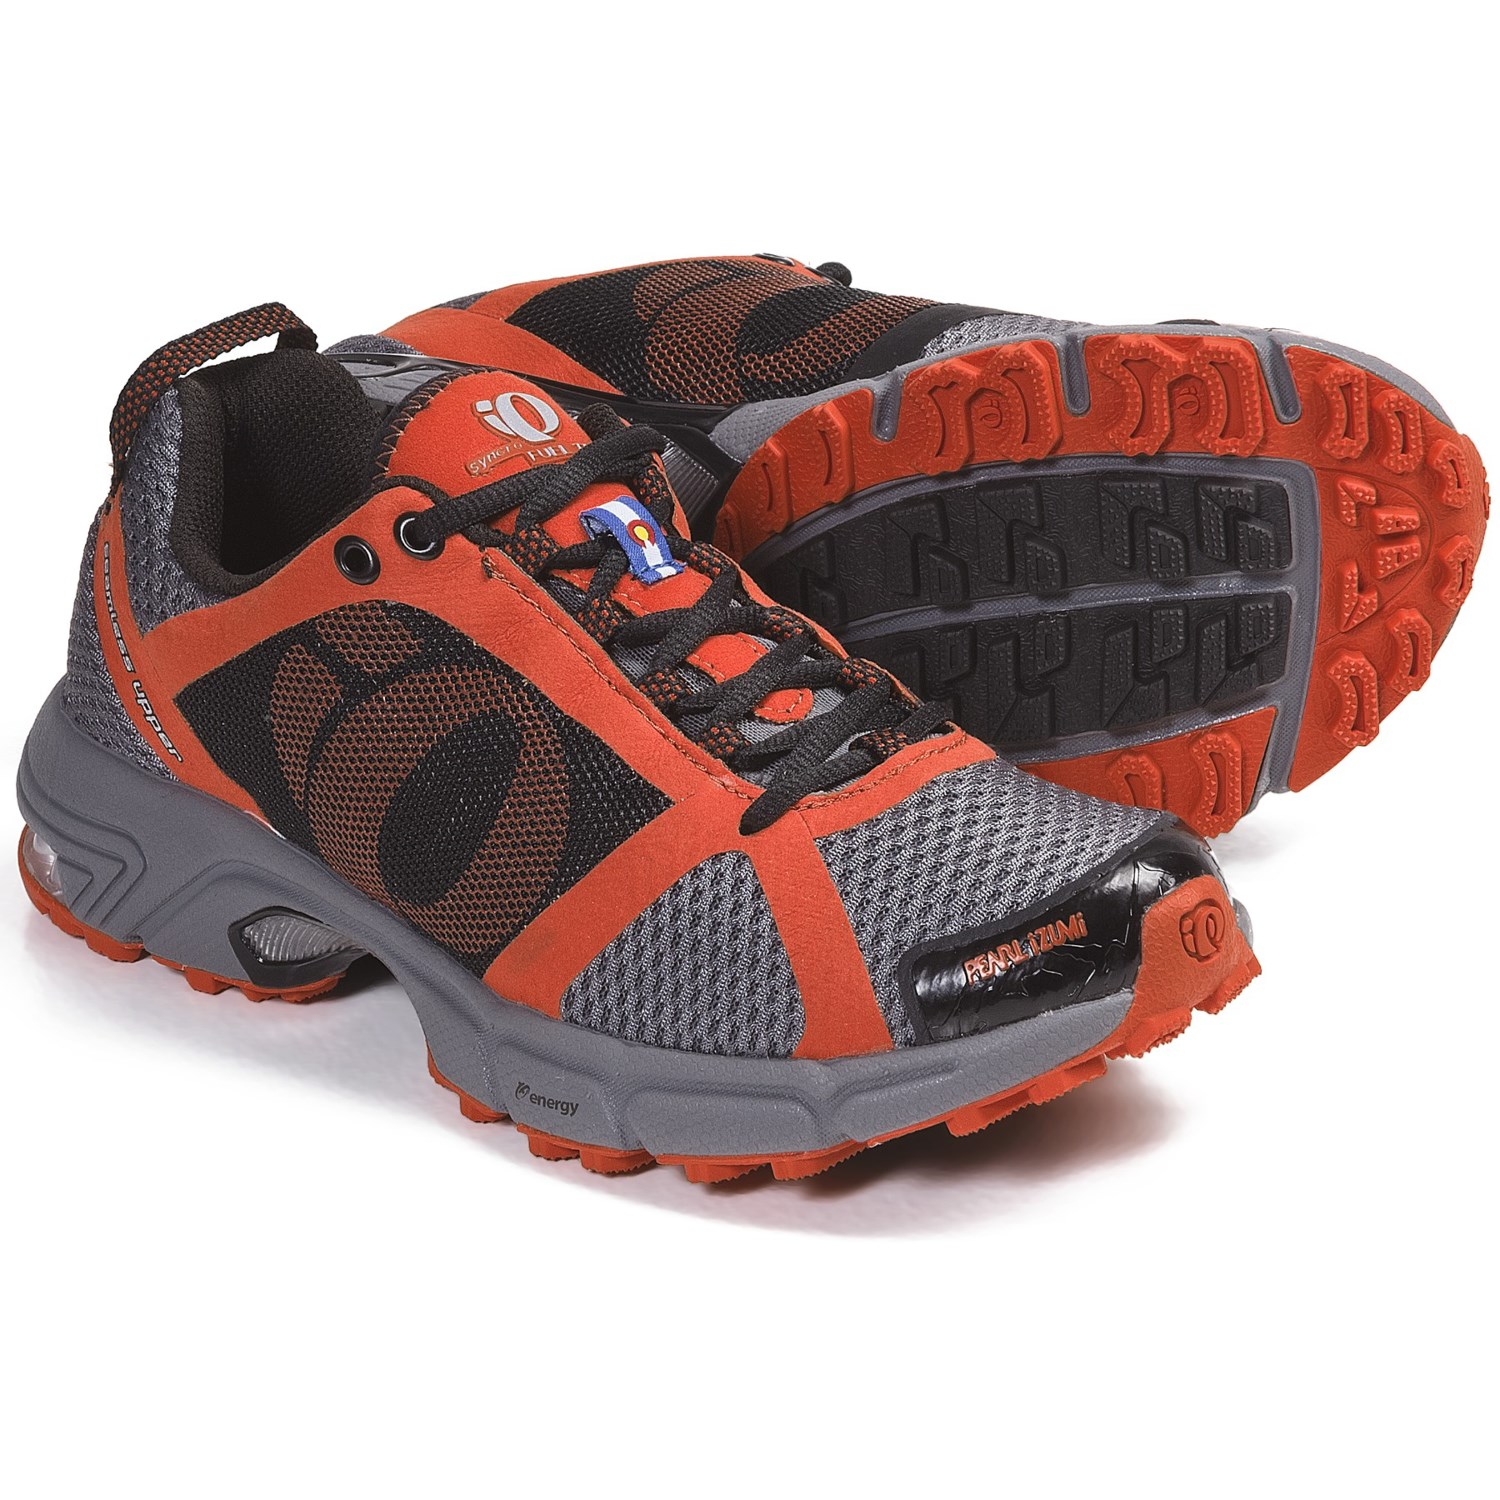 Running Trail Shoes Reviews 6